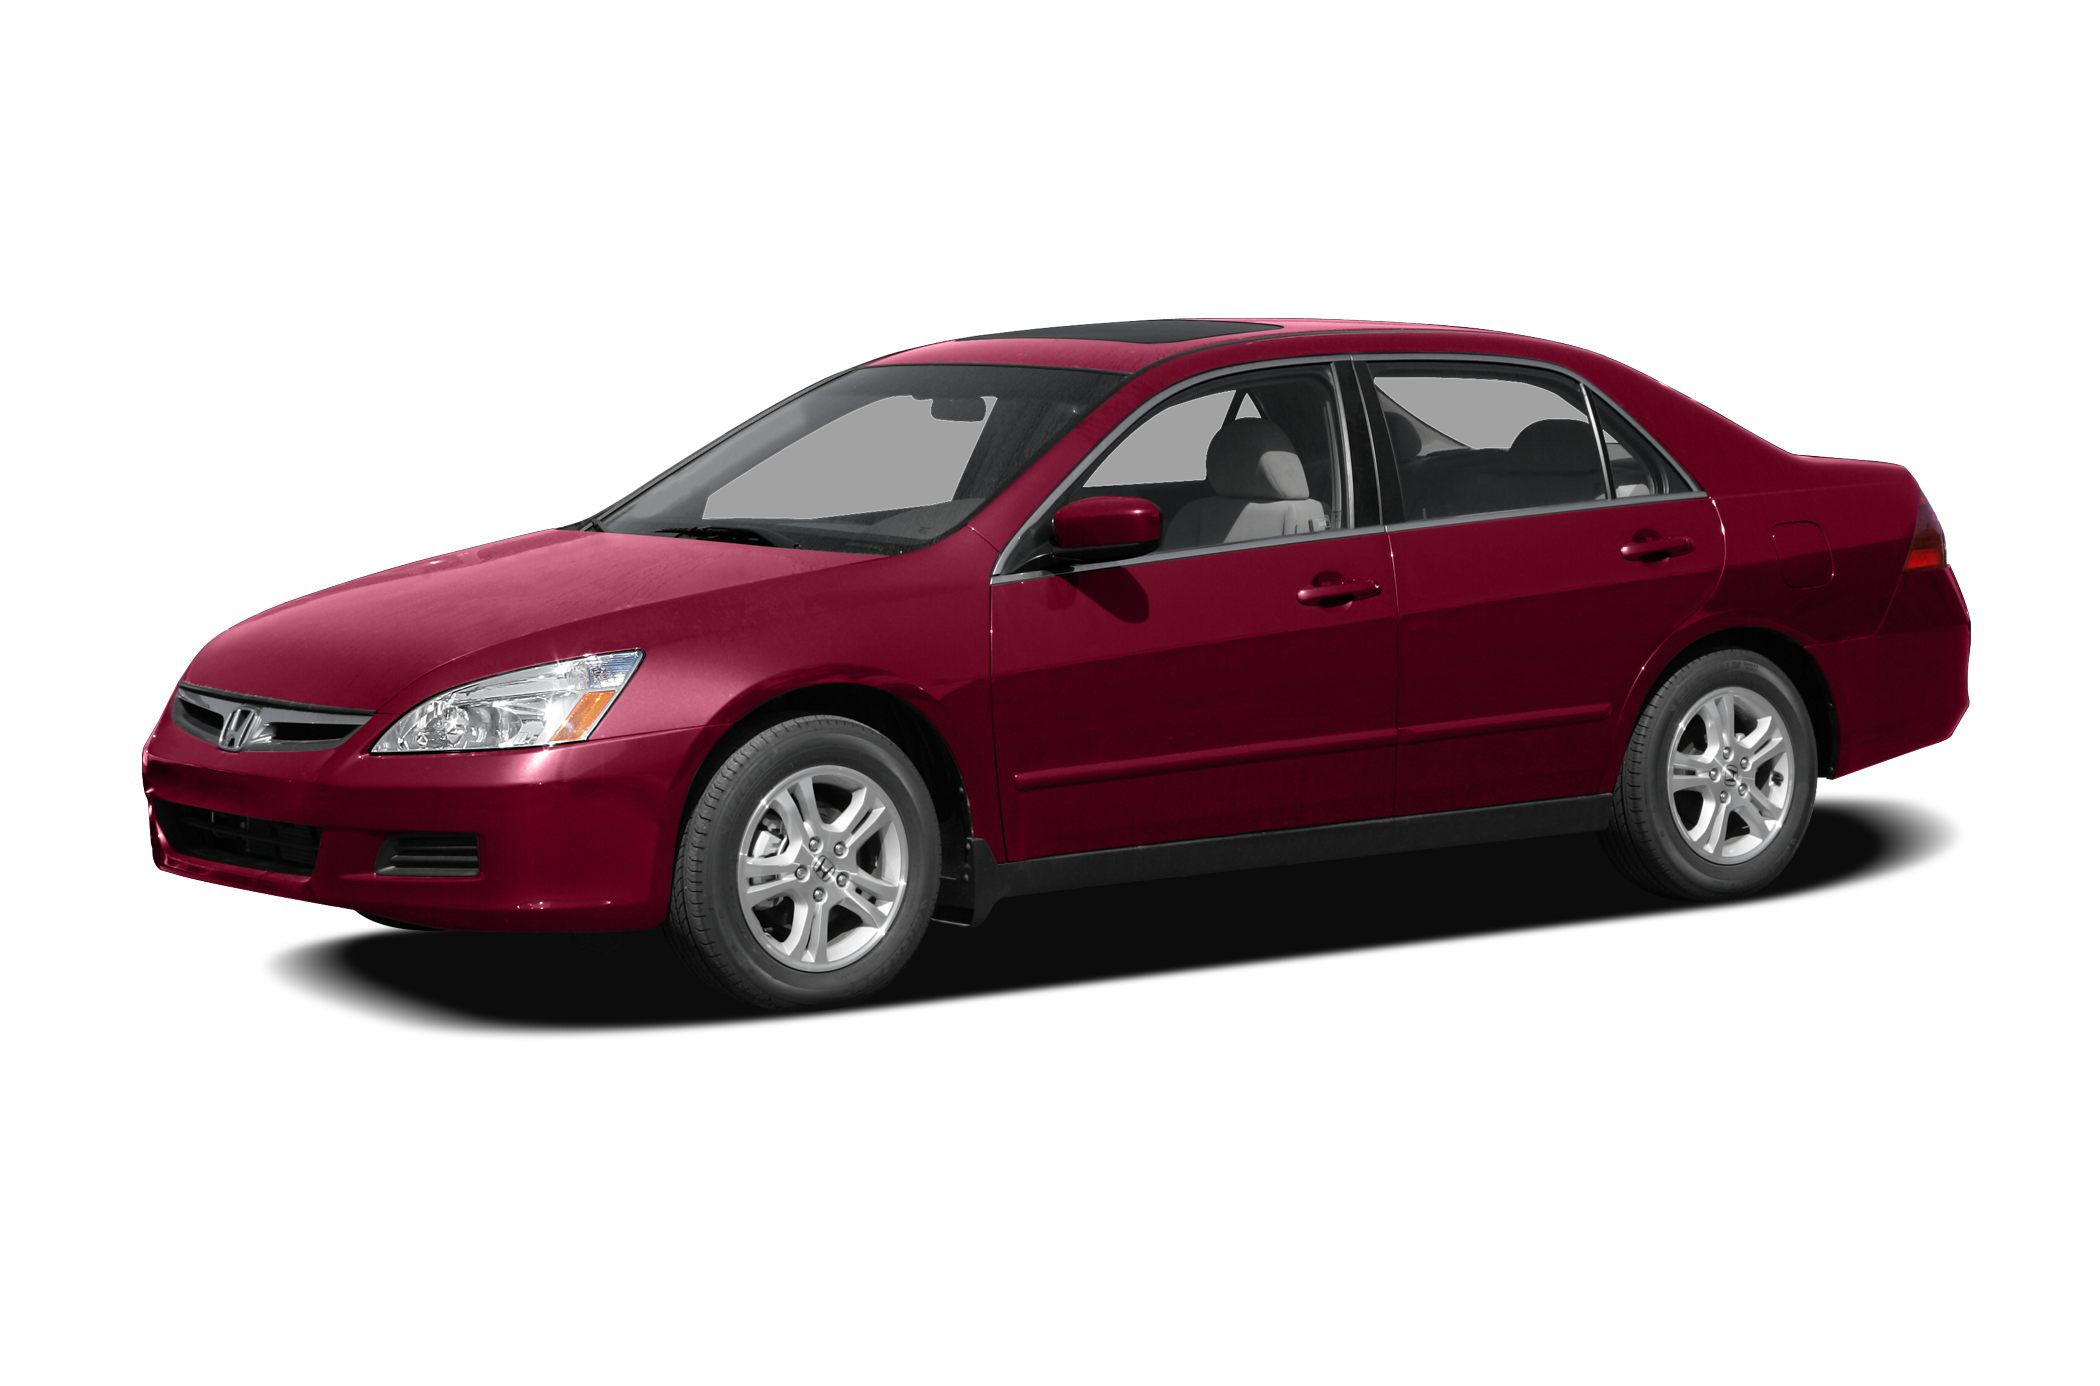 2007 Honda Accord 30 EX EX-L trim PRICED TO MOVE 300 below Kelley Blue Book EPA 29 MPG Hwy20